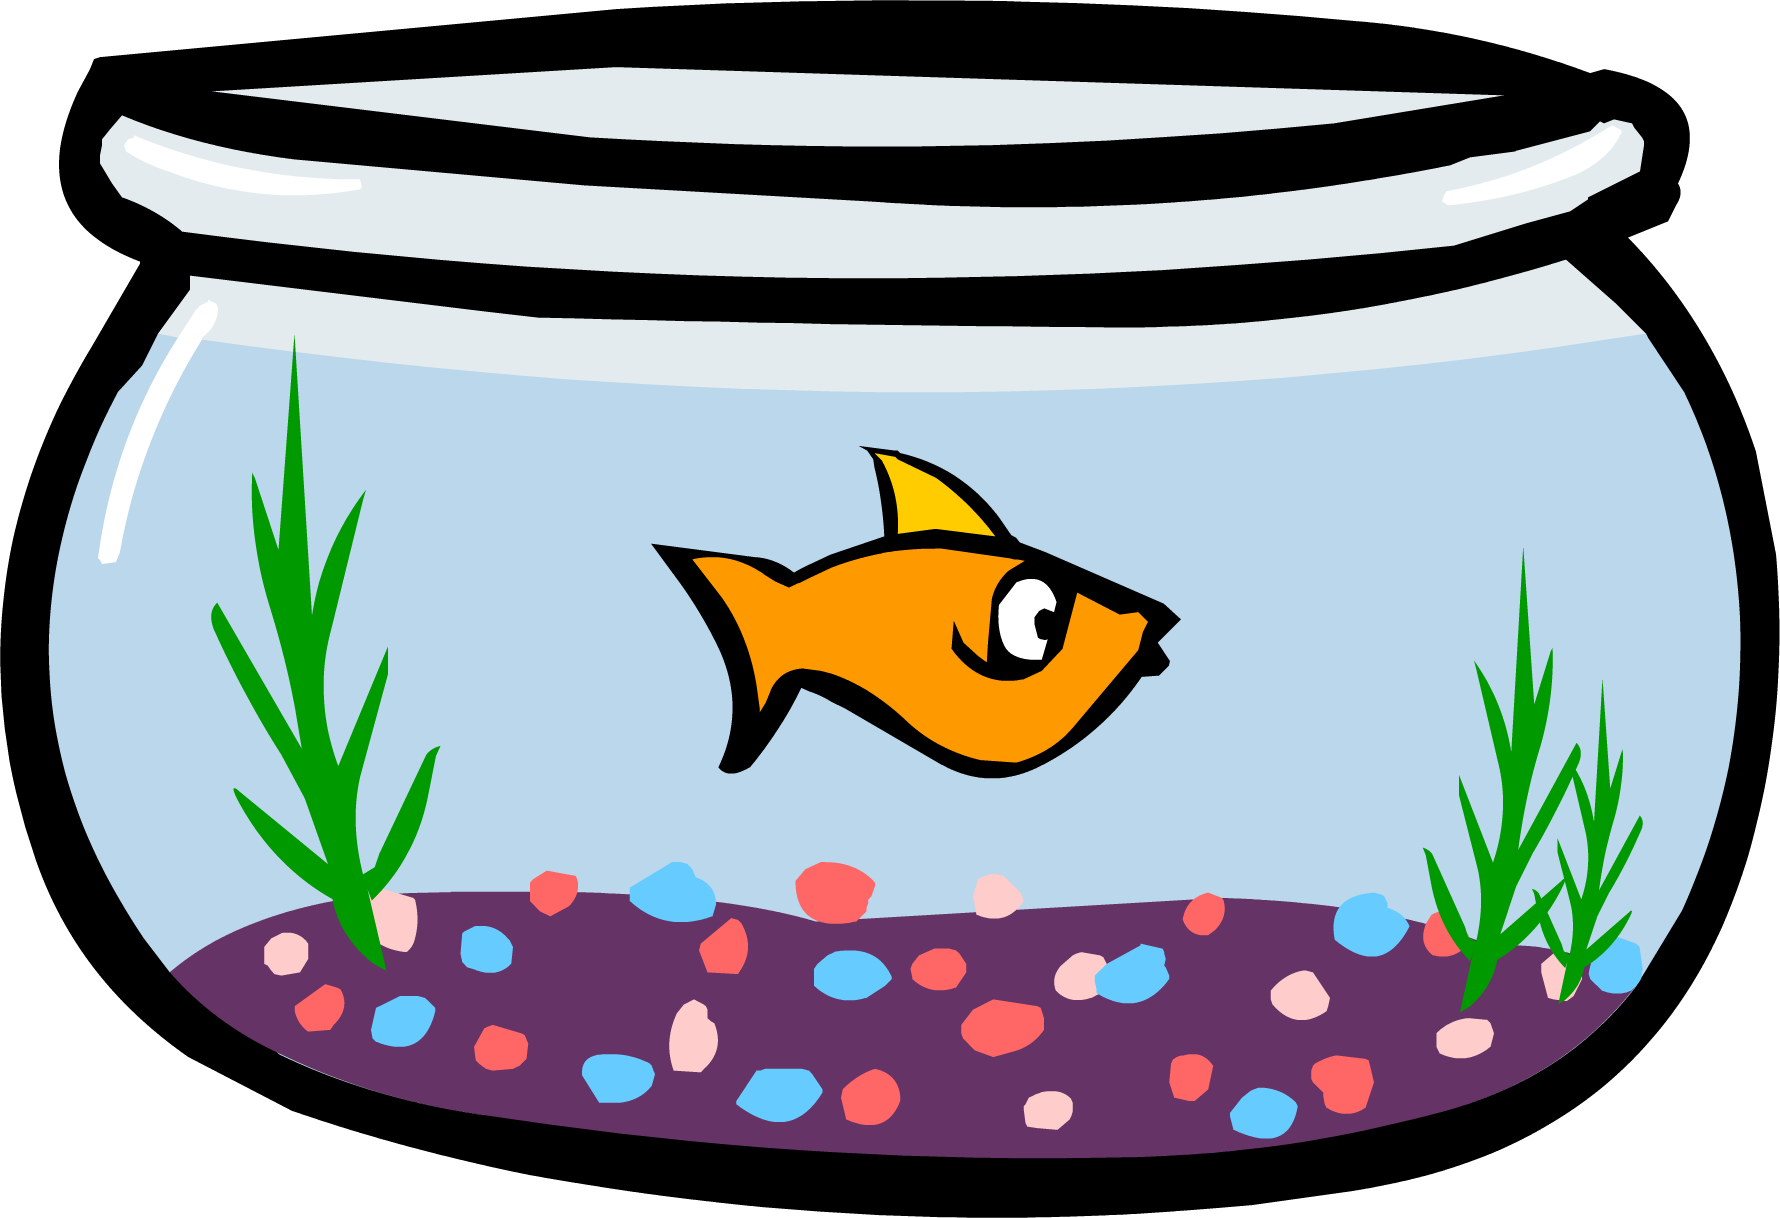 Fish fossils clipart graphic royalty free download Image - Fish Bowl.PNG | Club Penguin Wiki | FANDOM powered by Wikia graphic royalty free download